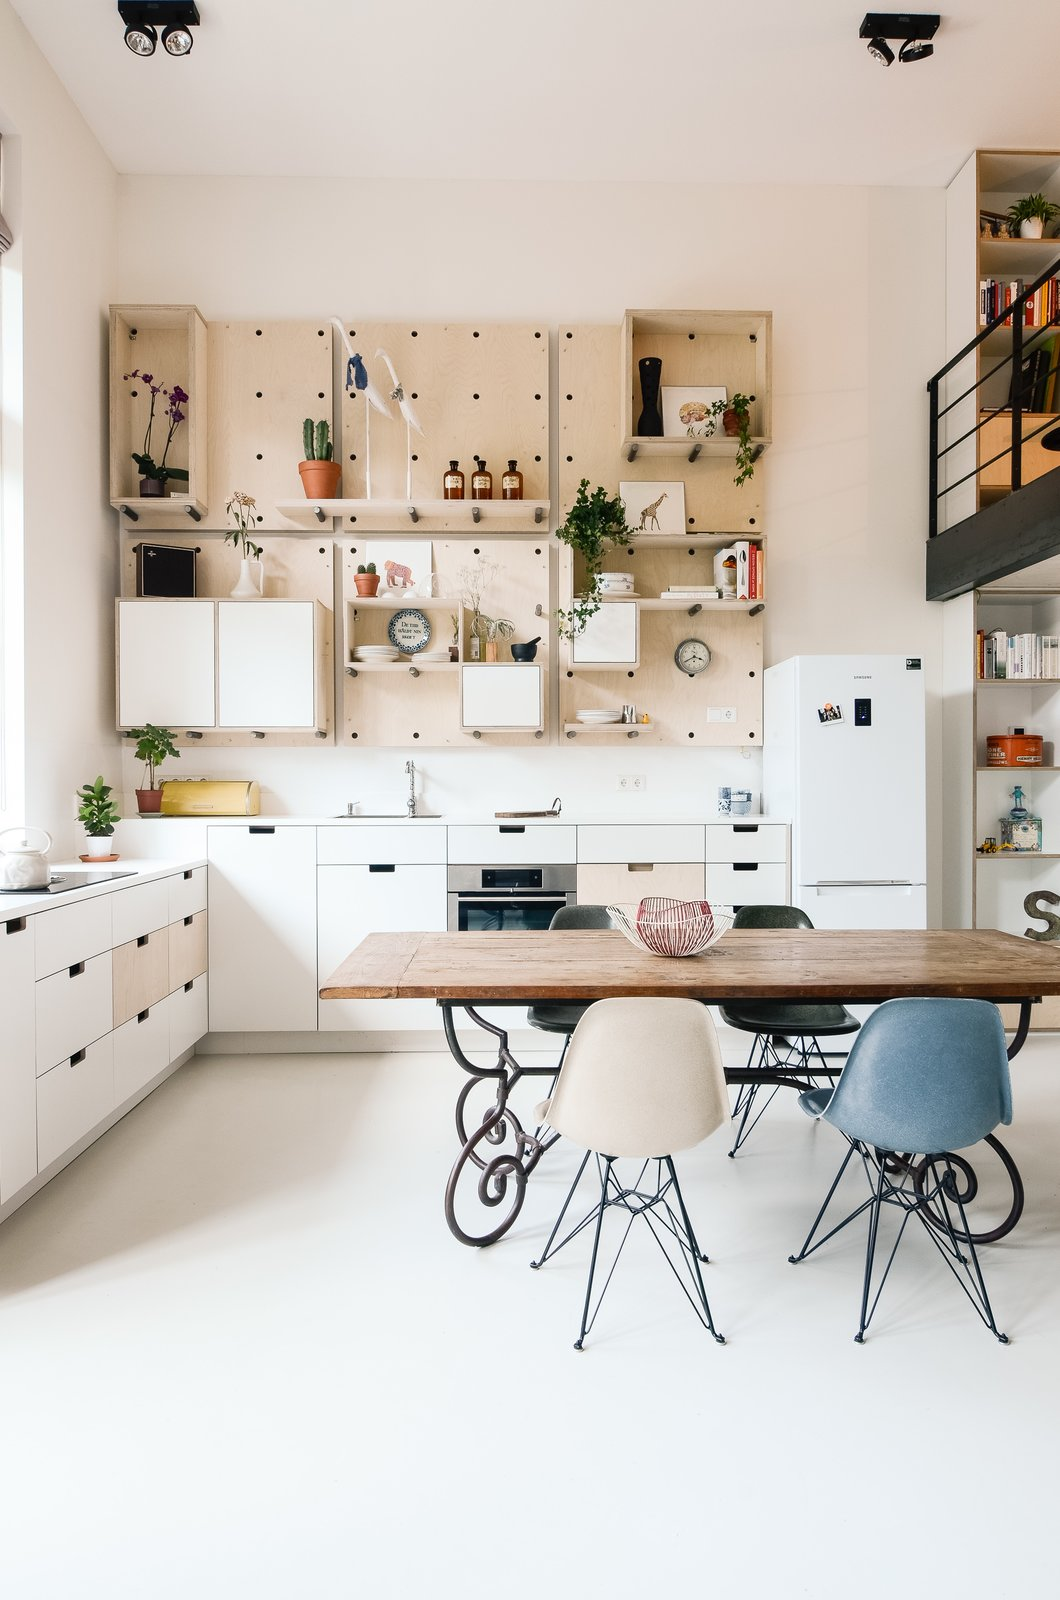 The kitchen is completely open to the main living area and features a custom birch pegboard wall. Eames dining chairs accent the space. Tagged: Kitchen, Refrigerator, White Cabinet, Open Cabinet, and Ceiling Lighting.  Photo 4 of 21 in 20 Dream Kitchens from Schoolhouses Turned into Modern Homes